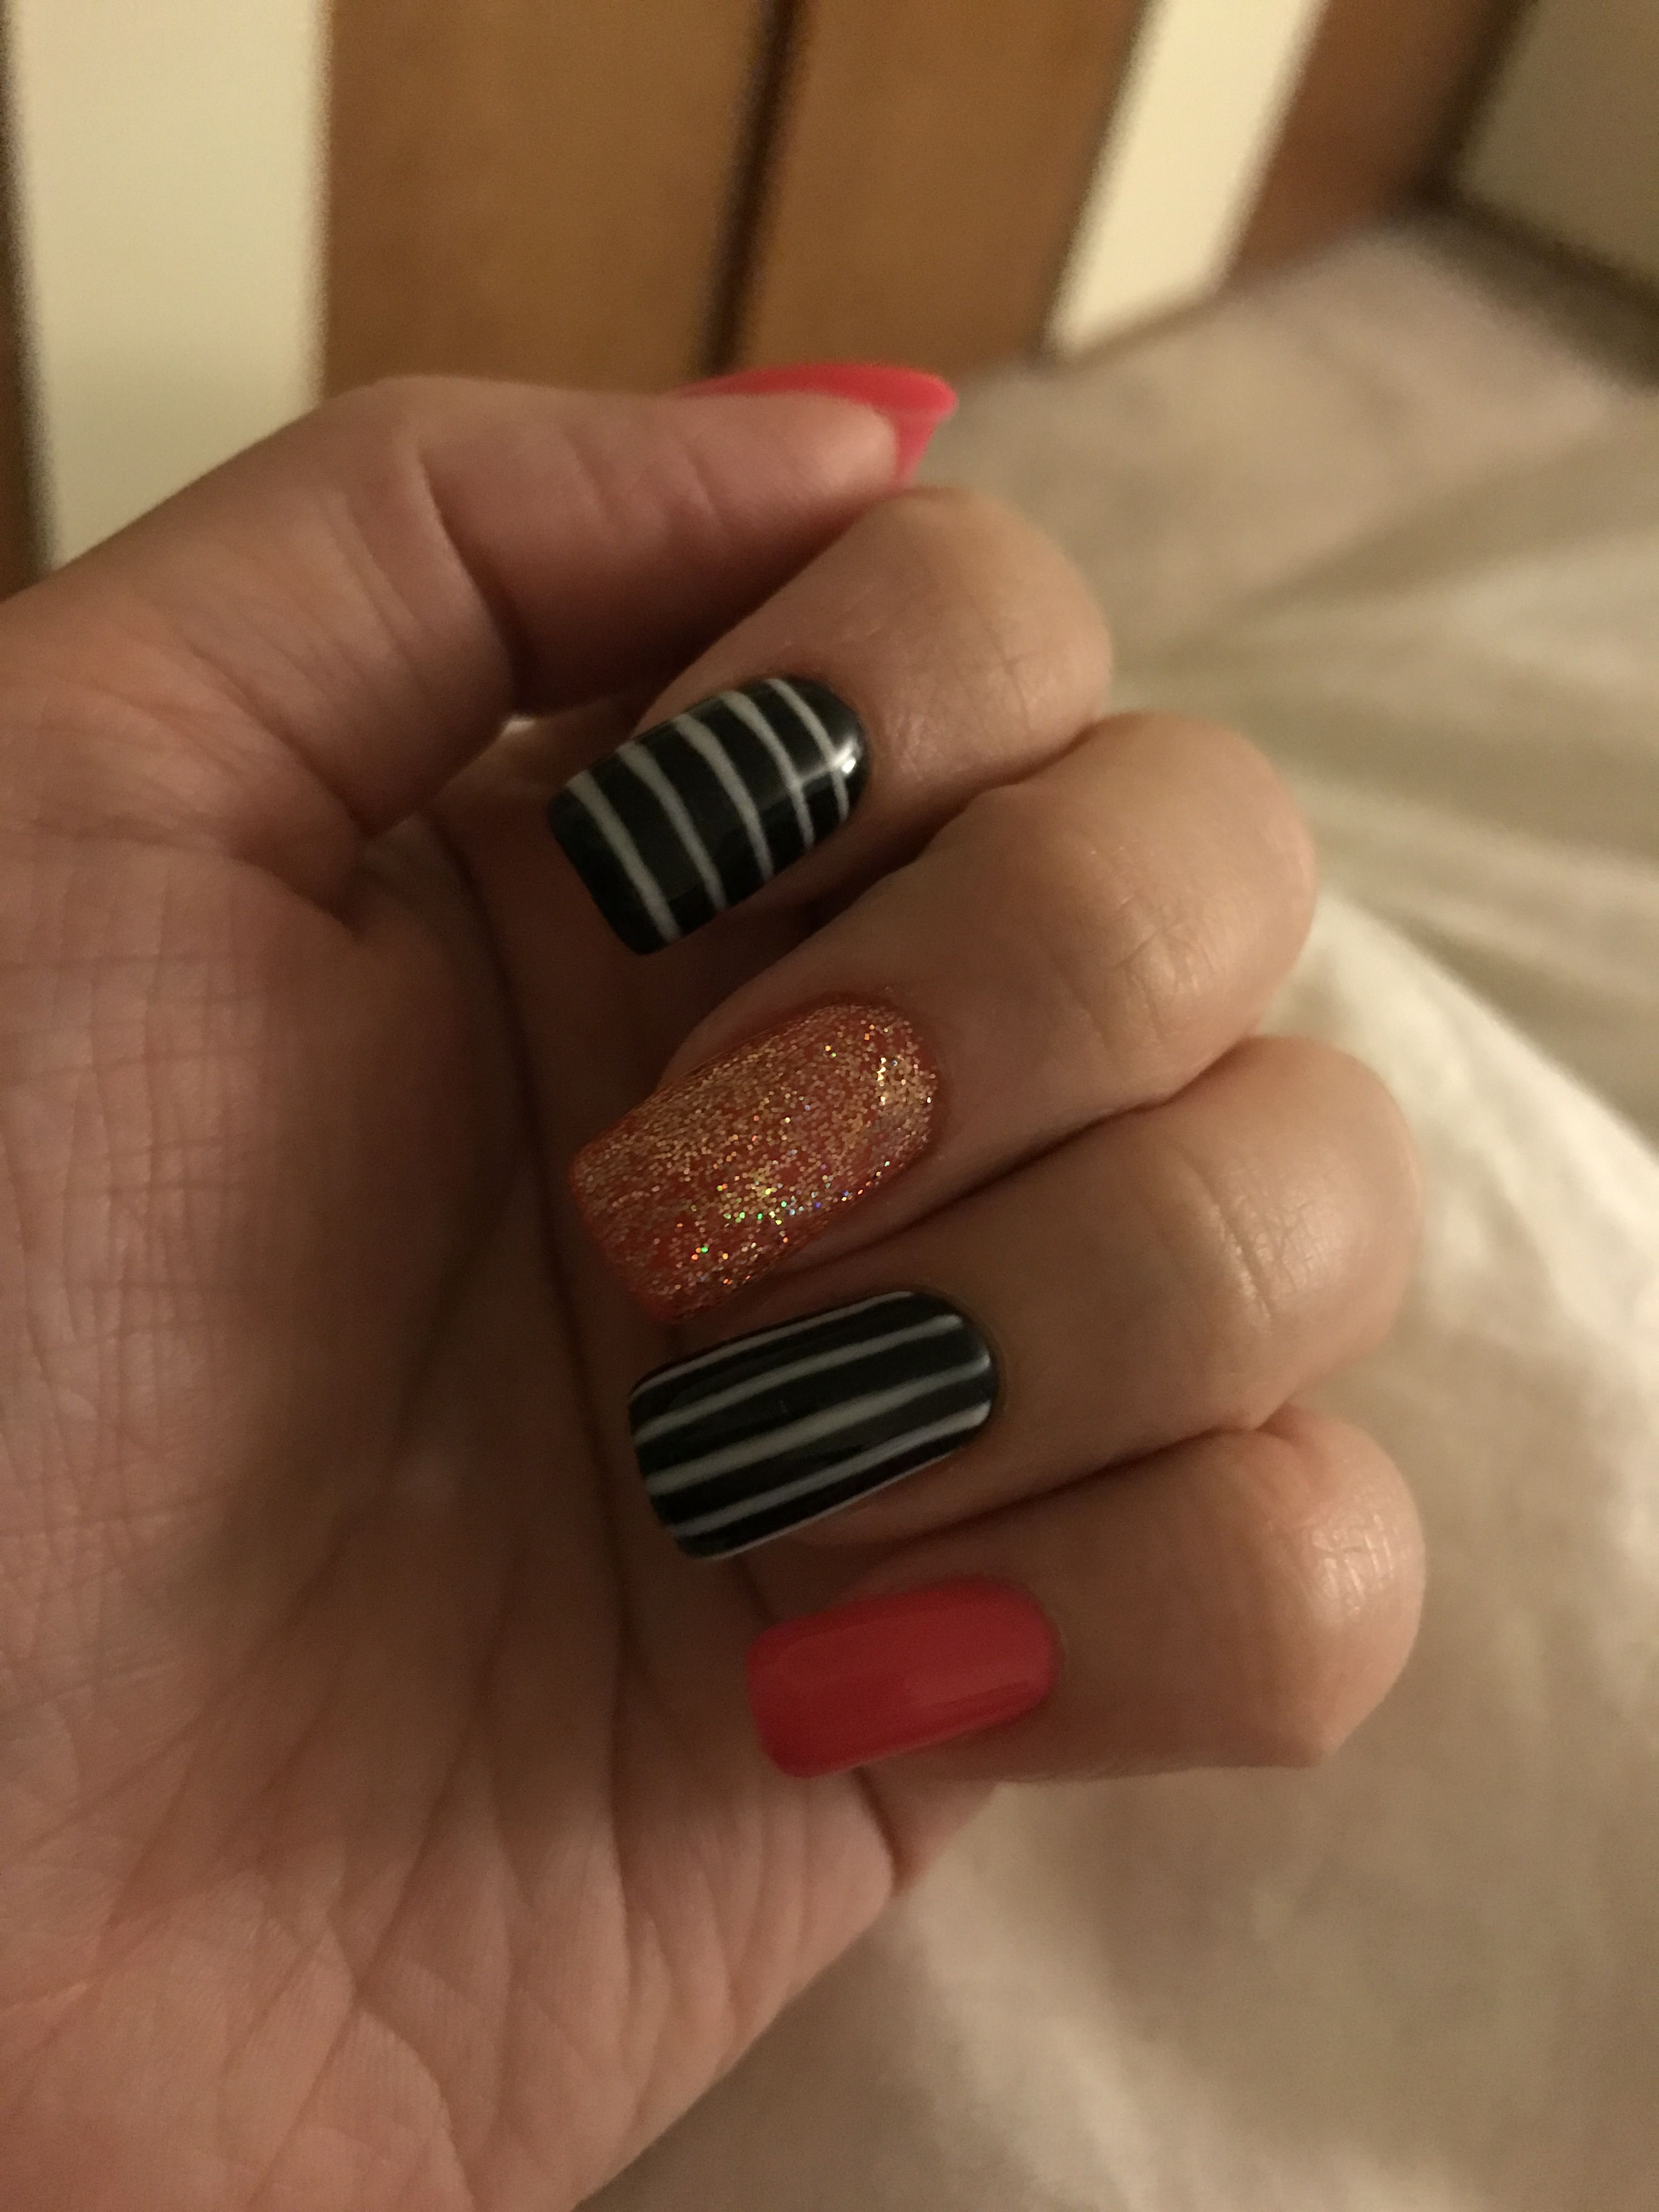 Striped nails with glitter and hot pink.